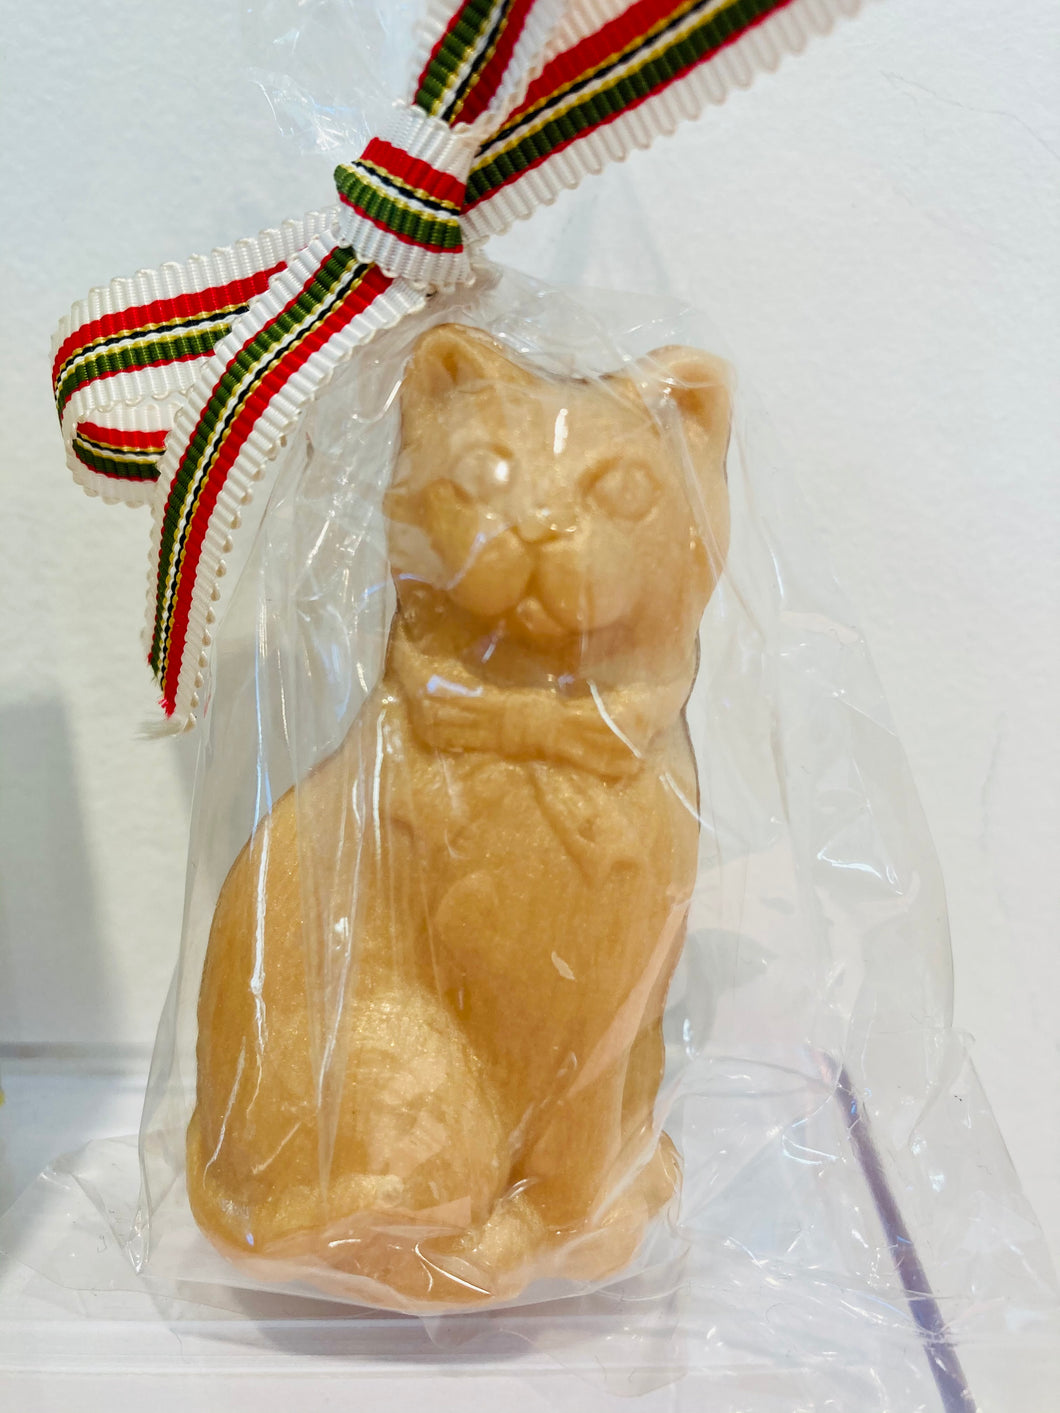 Greenwich Bay Precious Kitty Soap